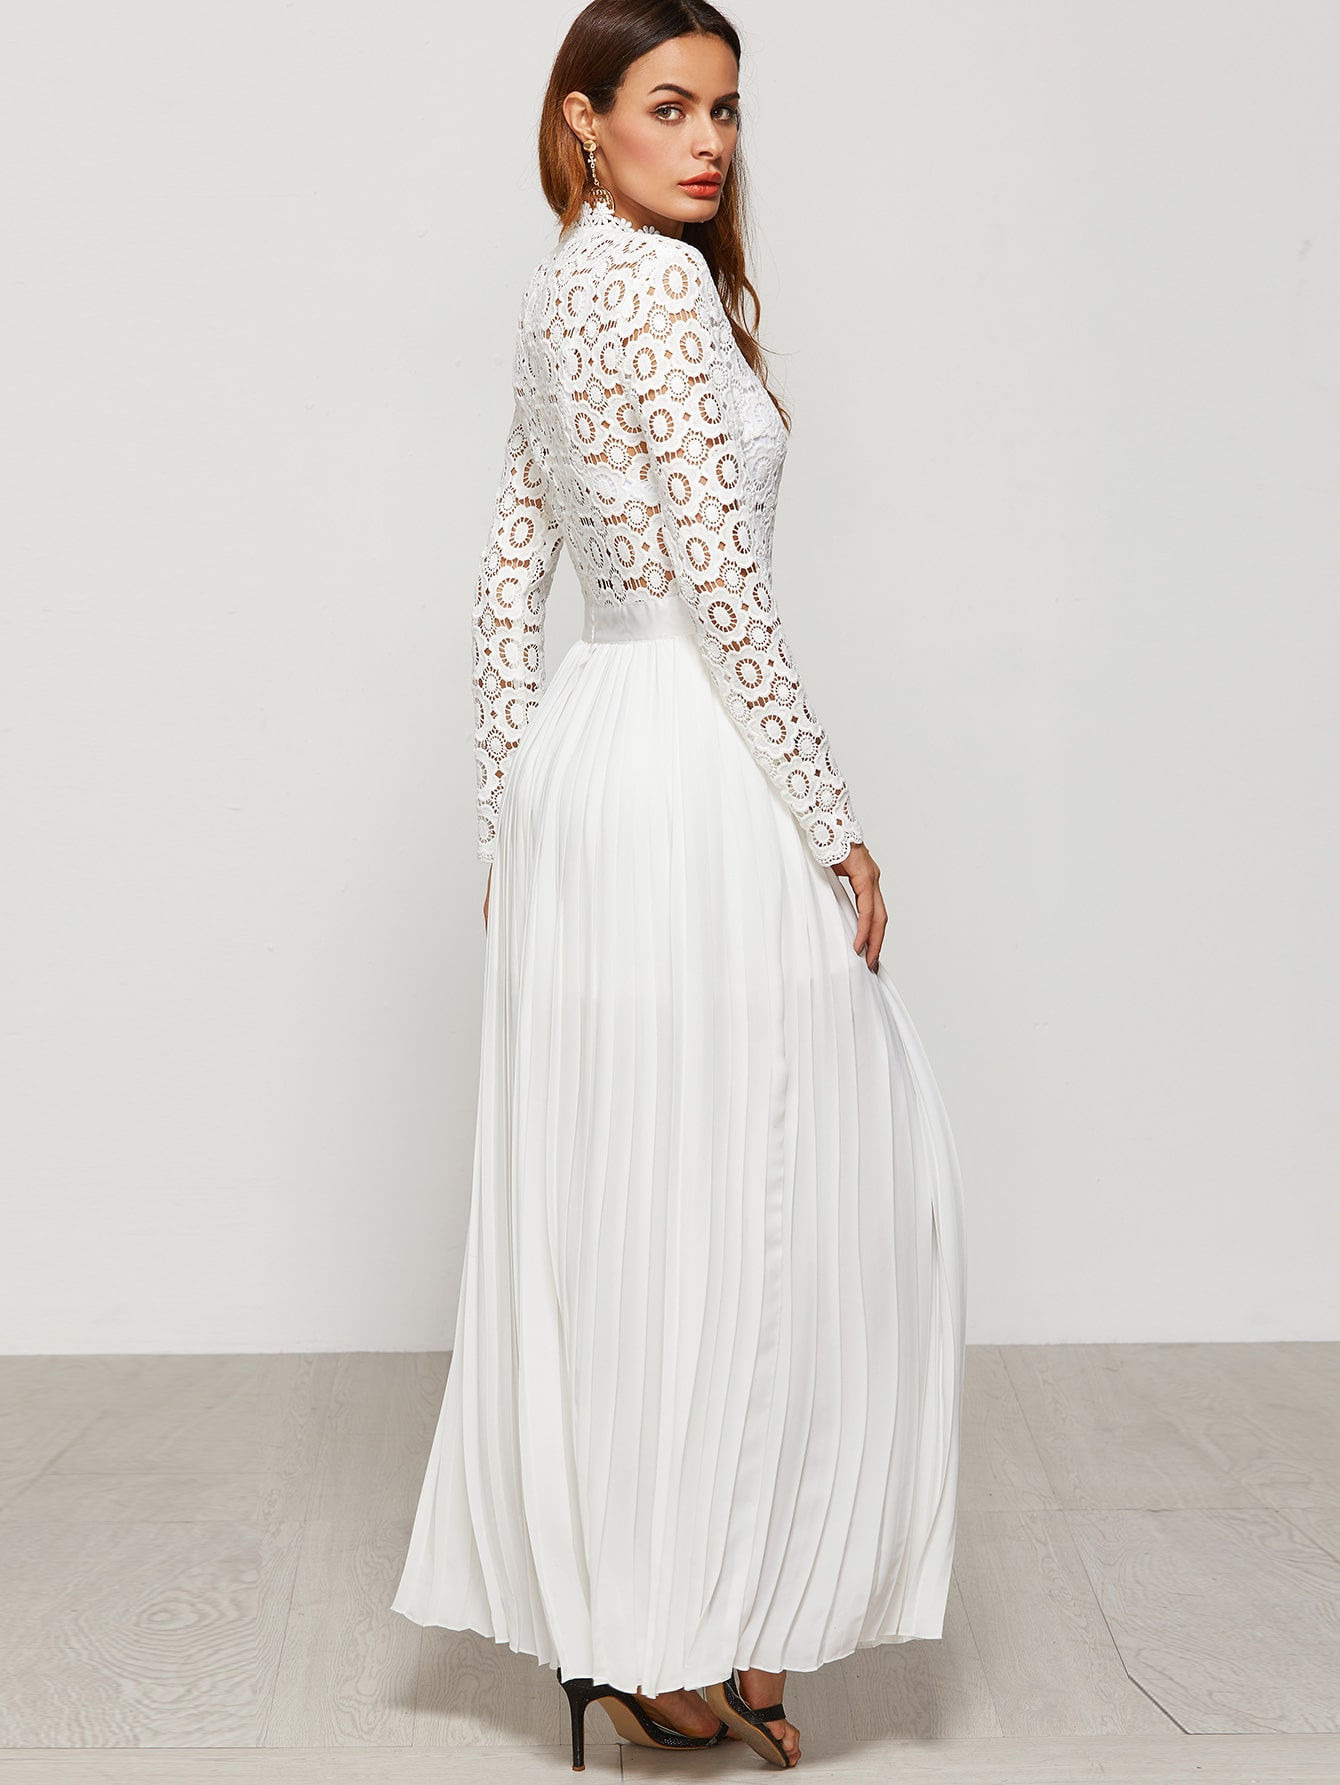 c4d9169e8f White Eyelet Embroidered Lace Top Split Pleated Dress EmmaCloth ...